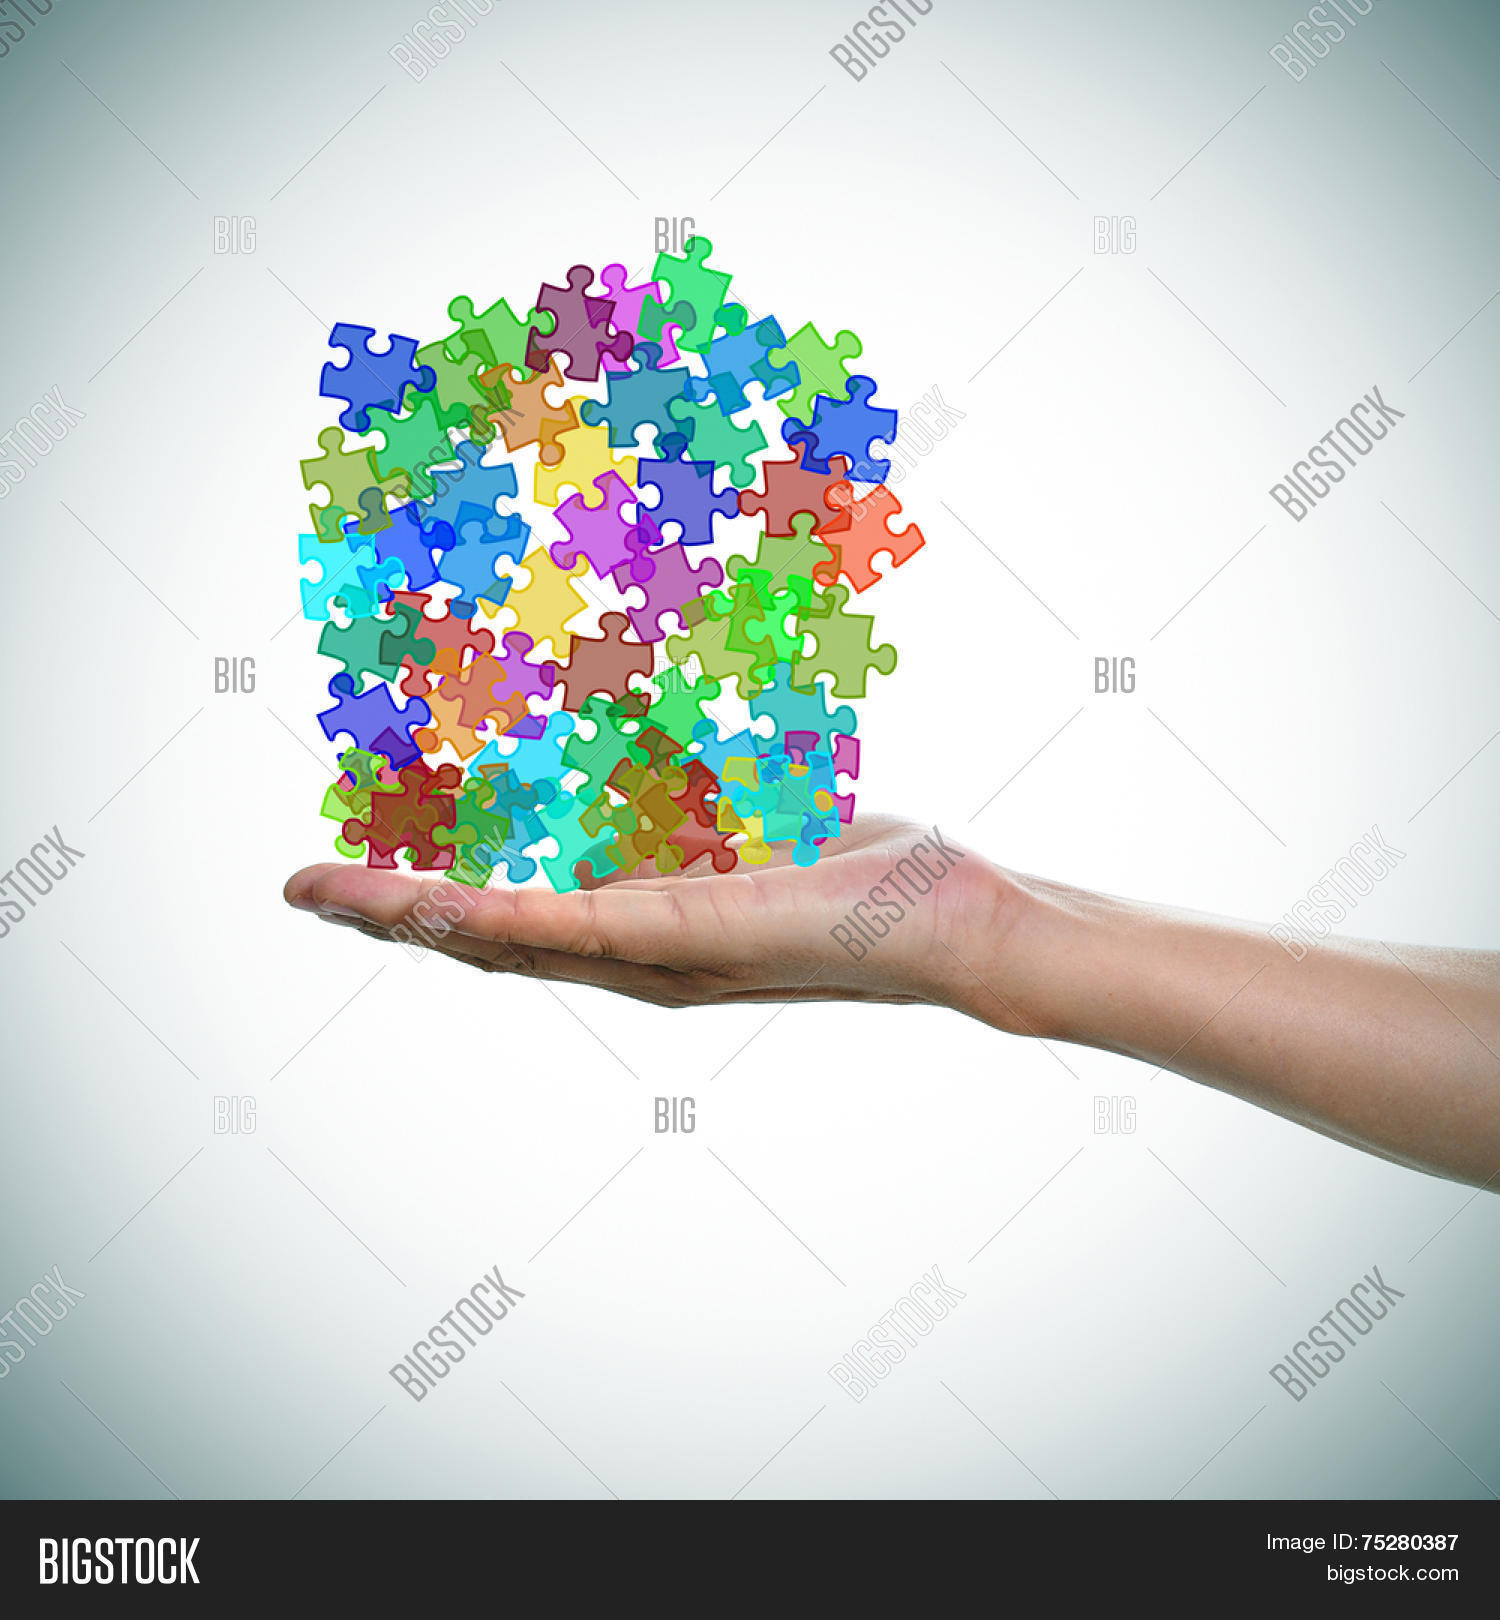 Man Hand Pile Puzzle Image Photo Free Trial Bigstock